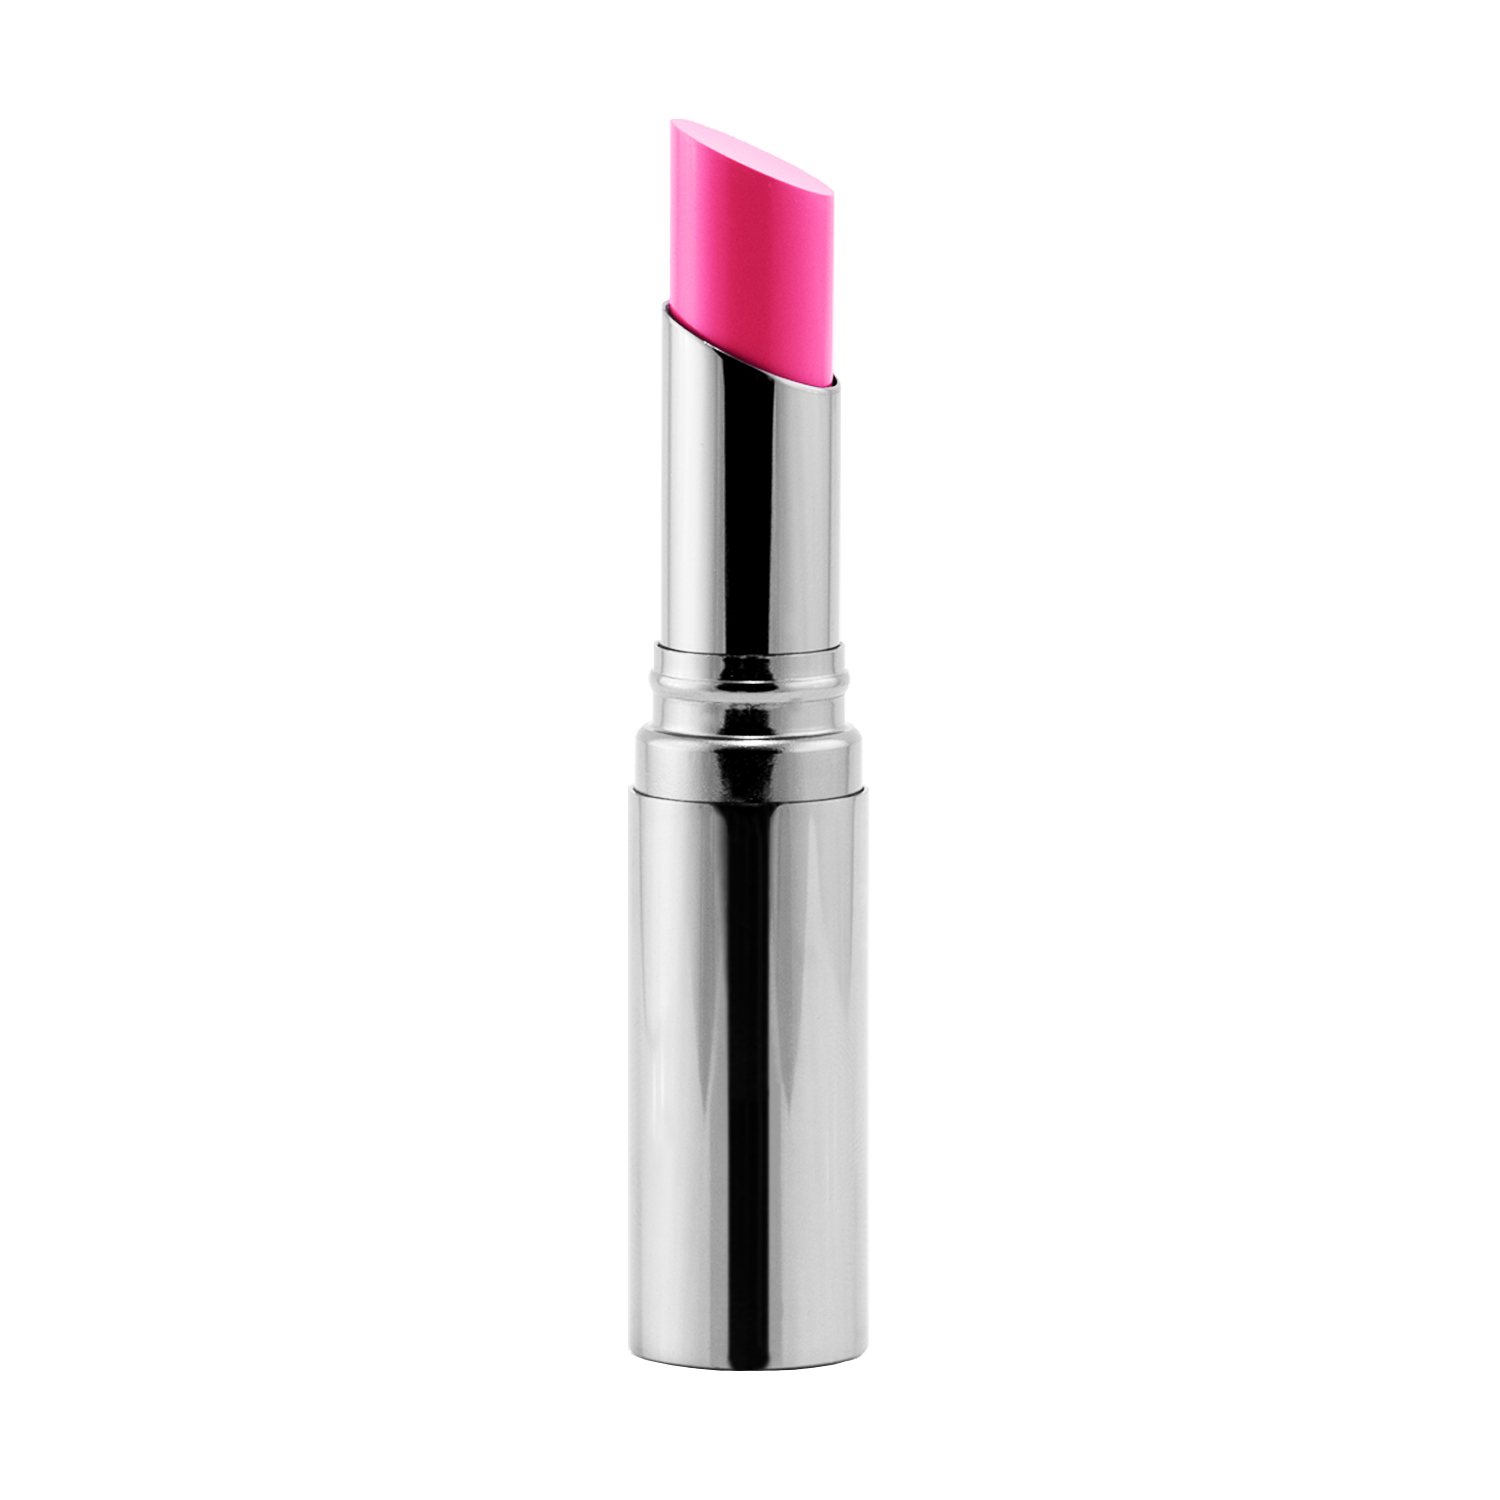 CAND - PURE LIP STICK